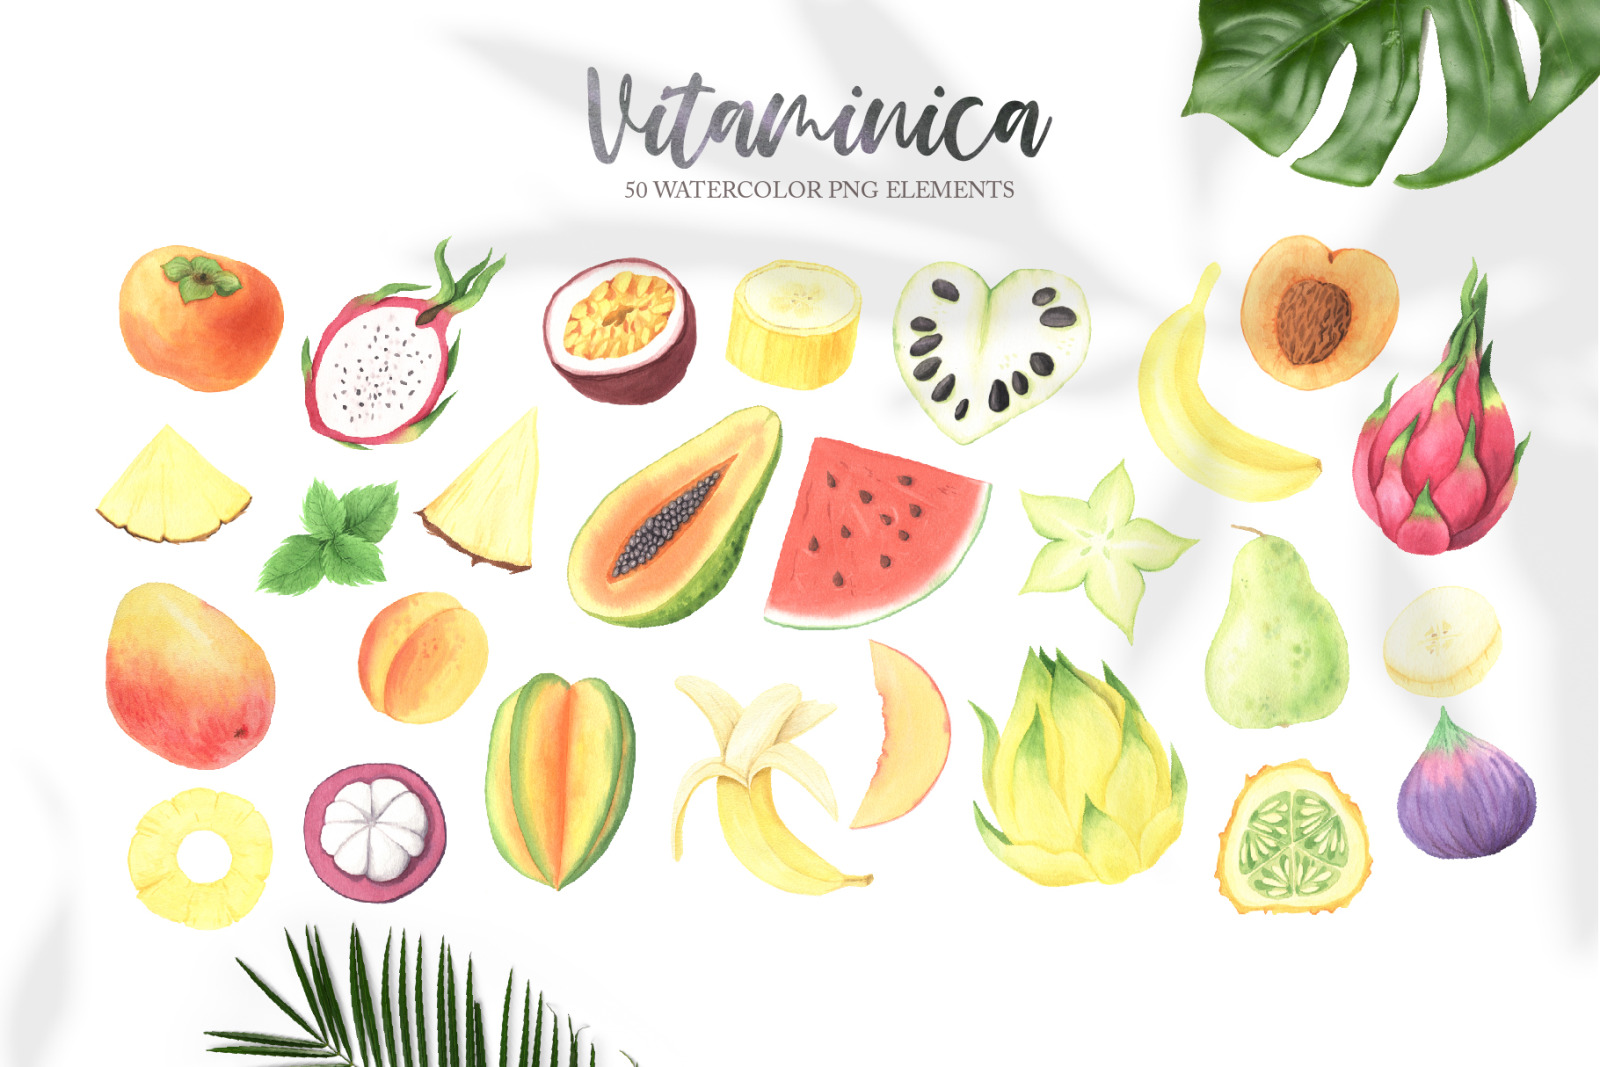 Watercolor Vitaminica Fruit Set